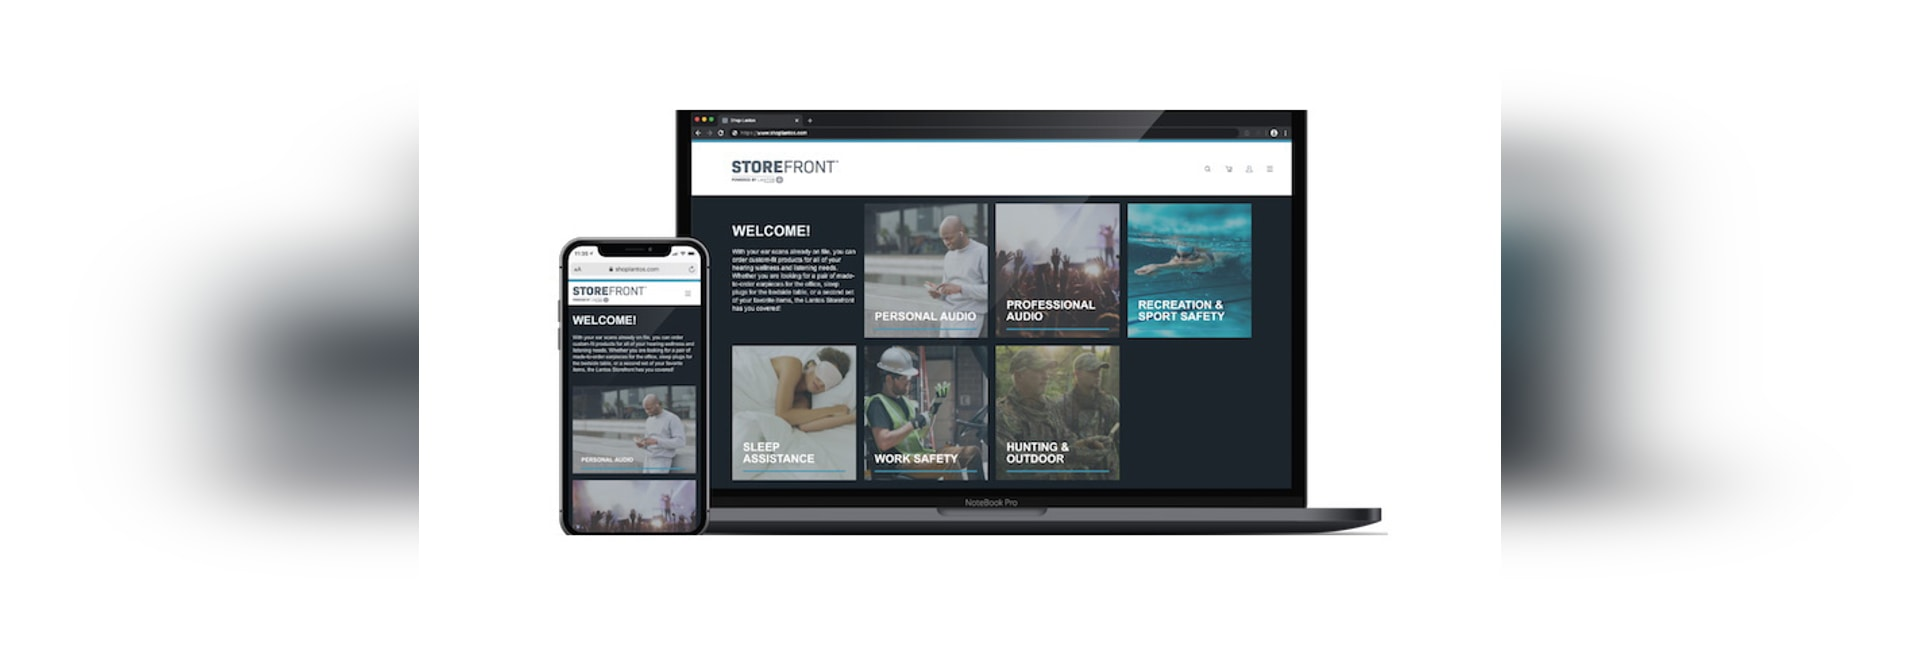 Remote B2C in-ear product portal launched by Lantos